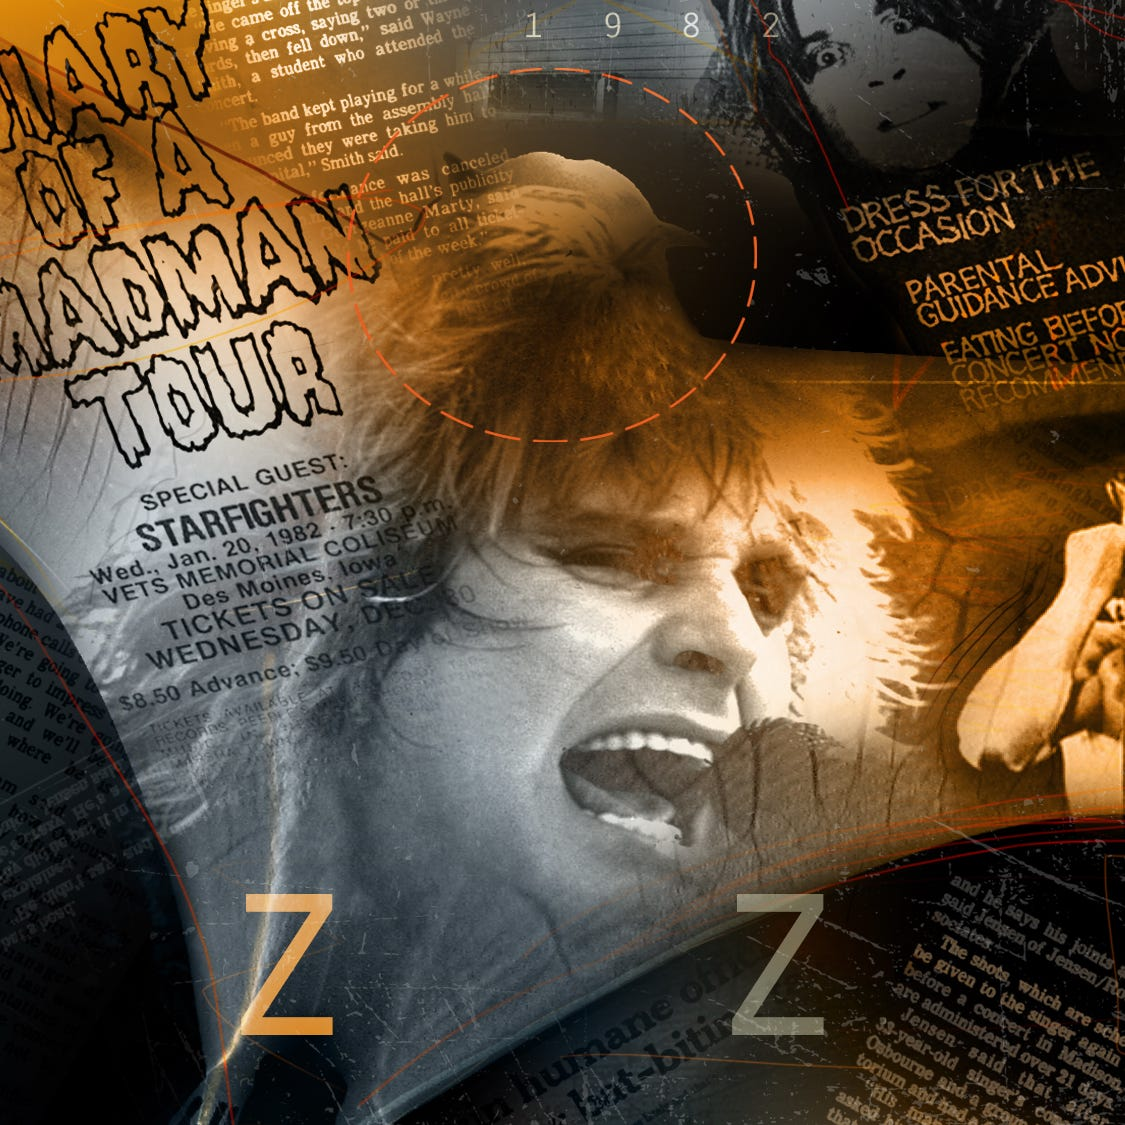 What led to Ozzy Osbourne infamously biting the head off a bat in Des Moines?